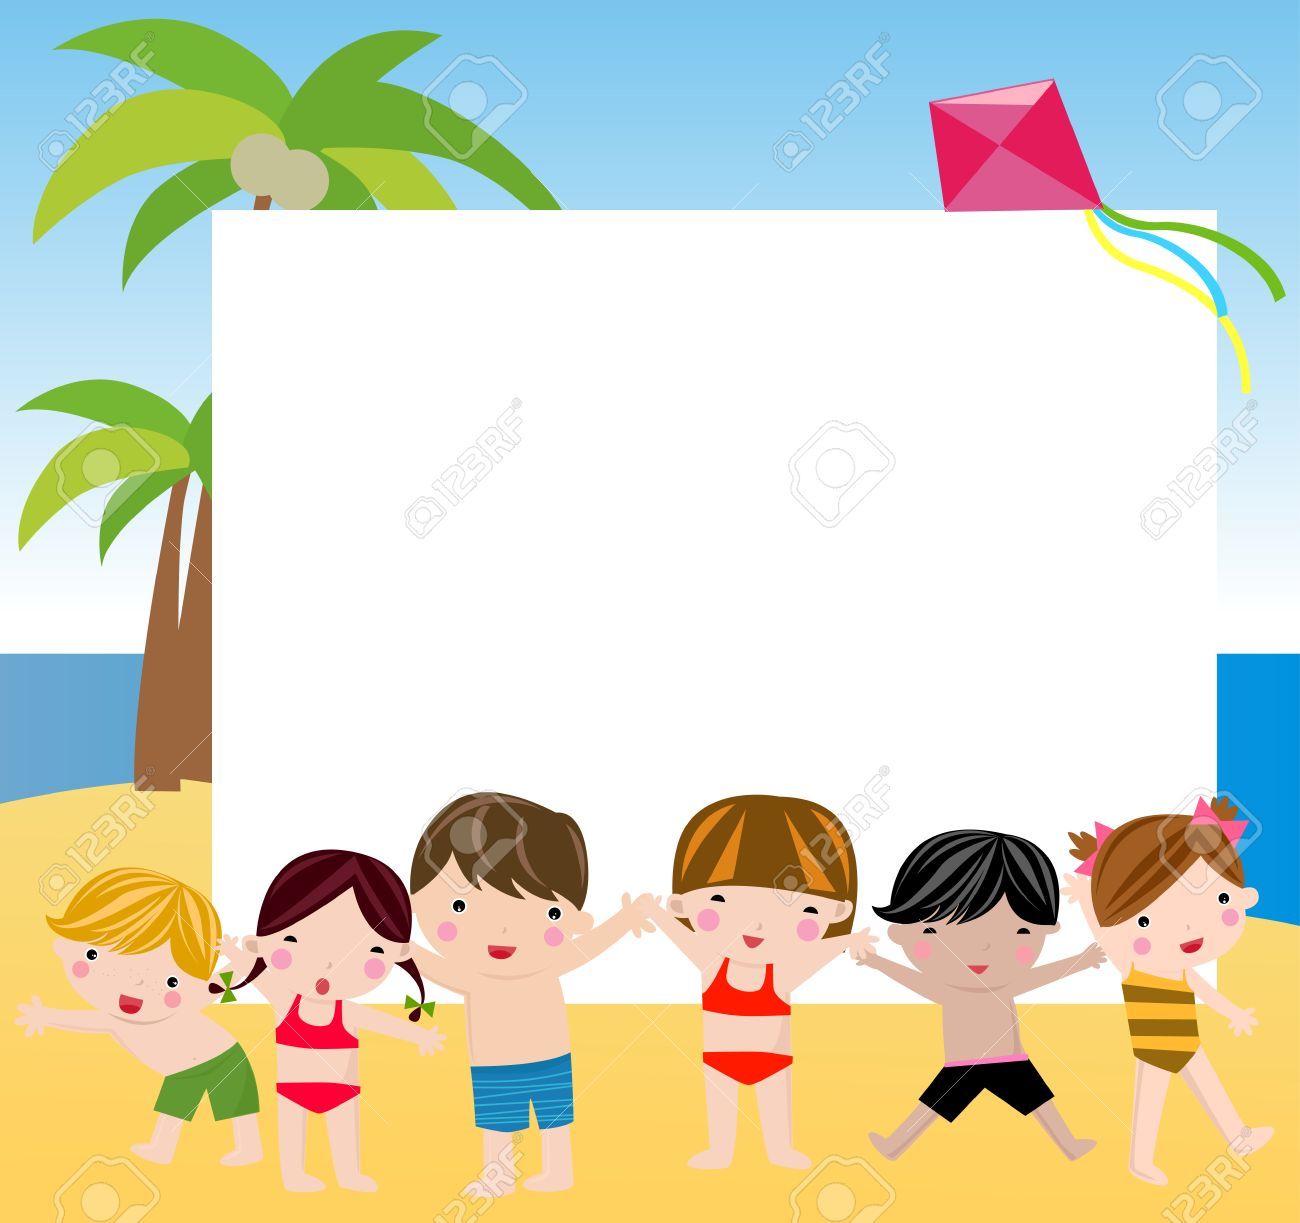 Summer Children And Frame Royalty Free Cliparts, Vectors, And Stock ...